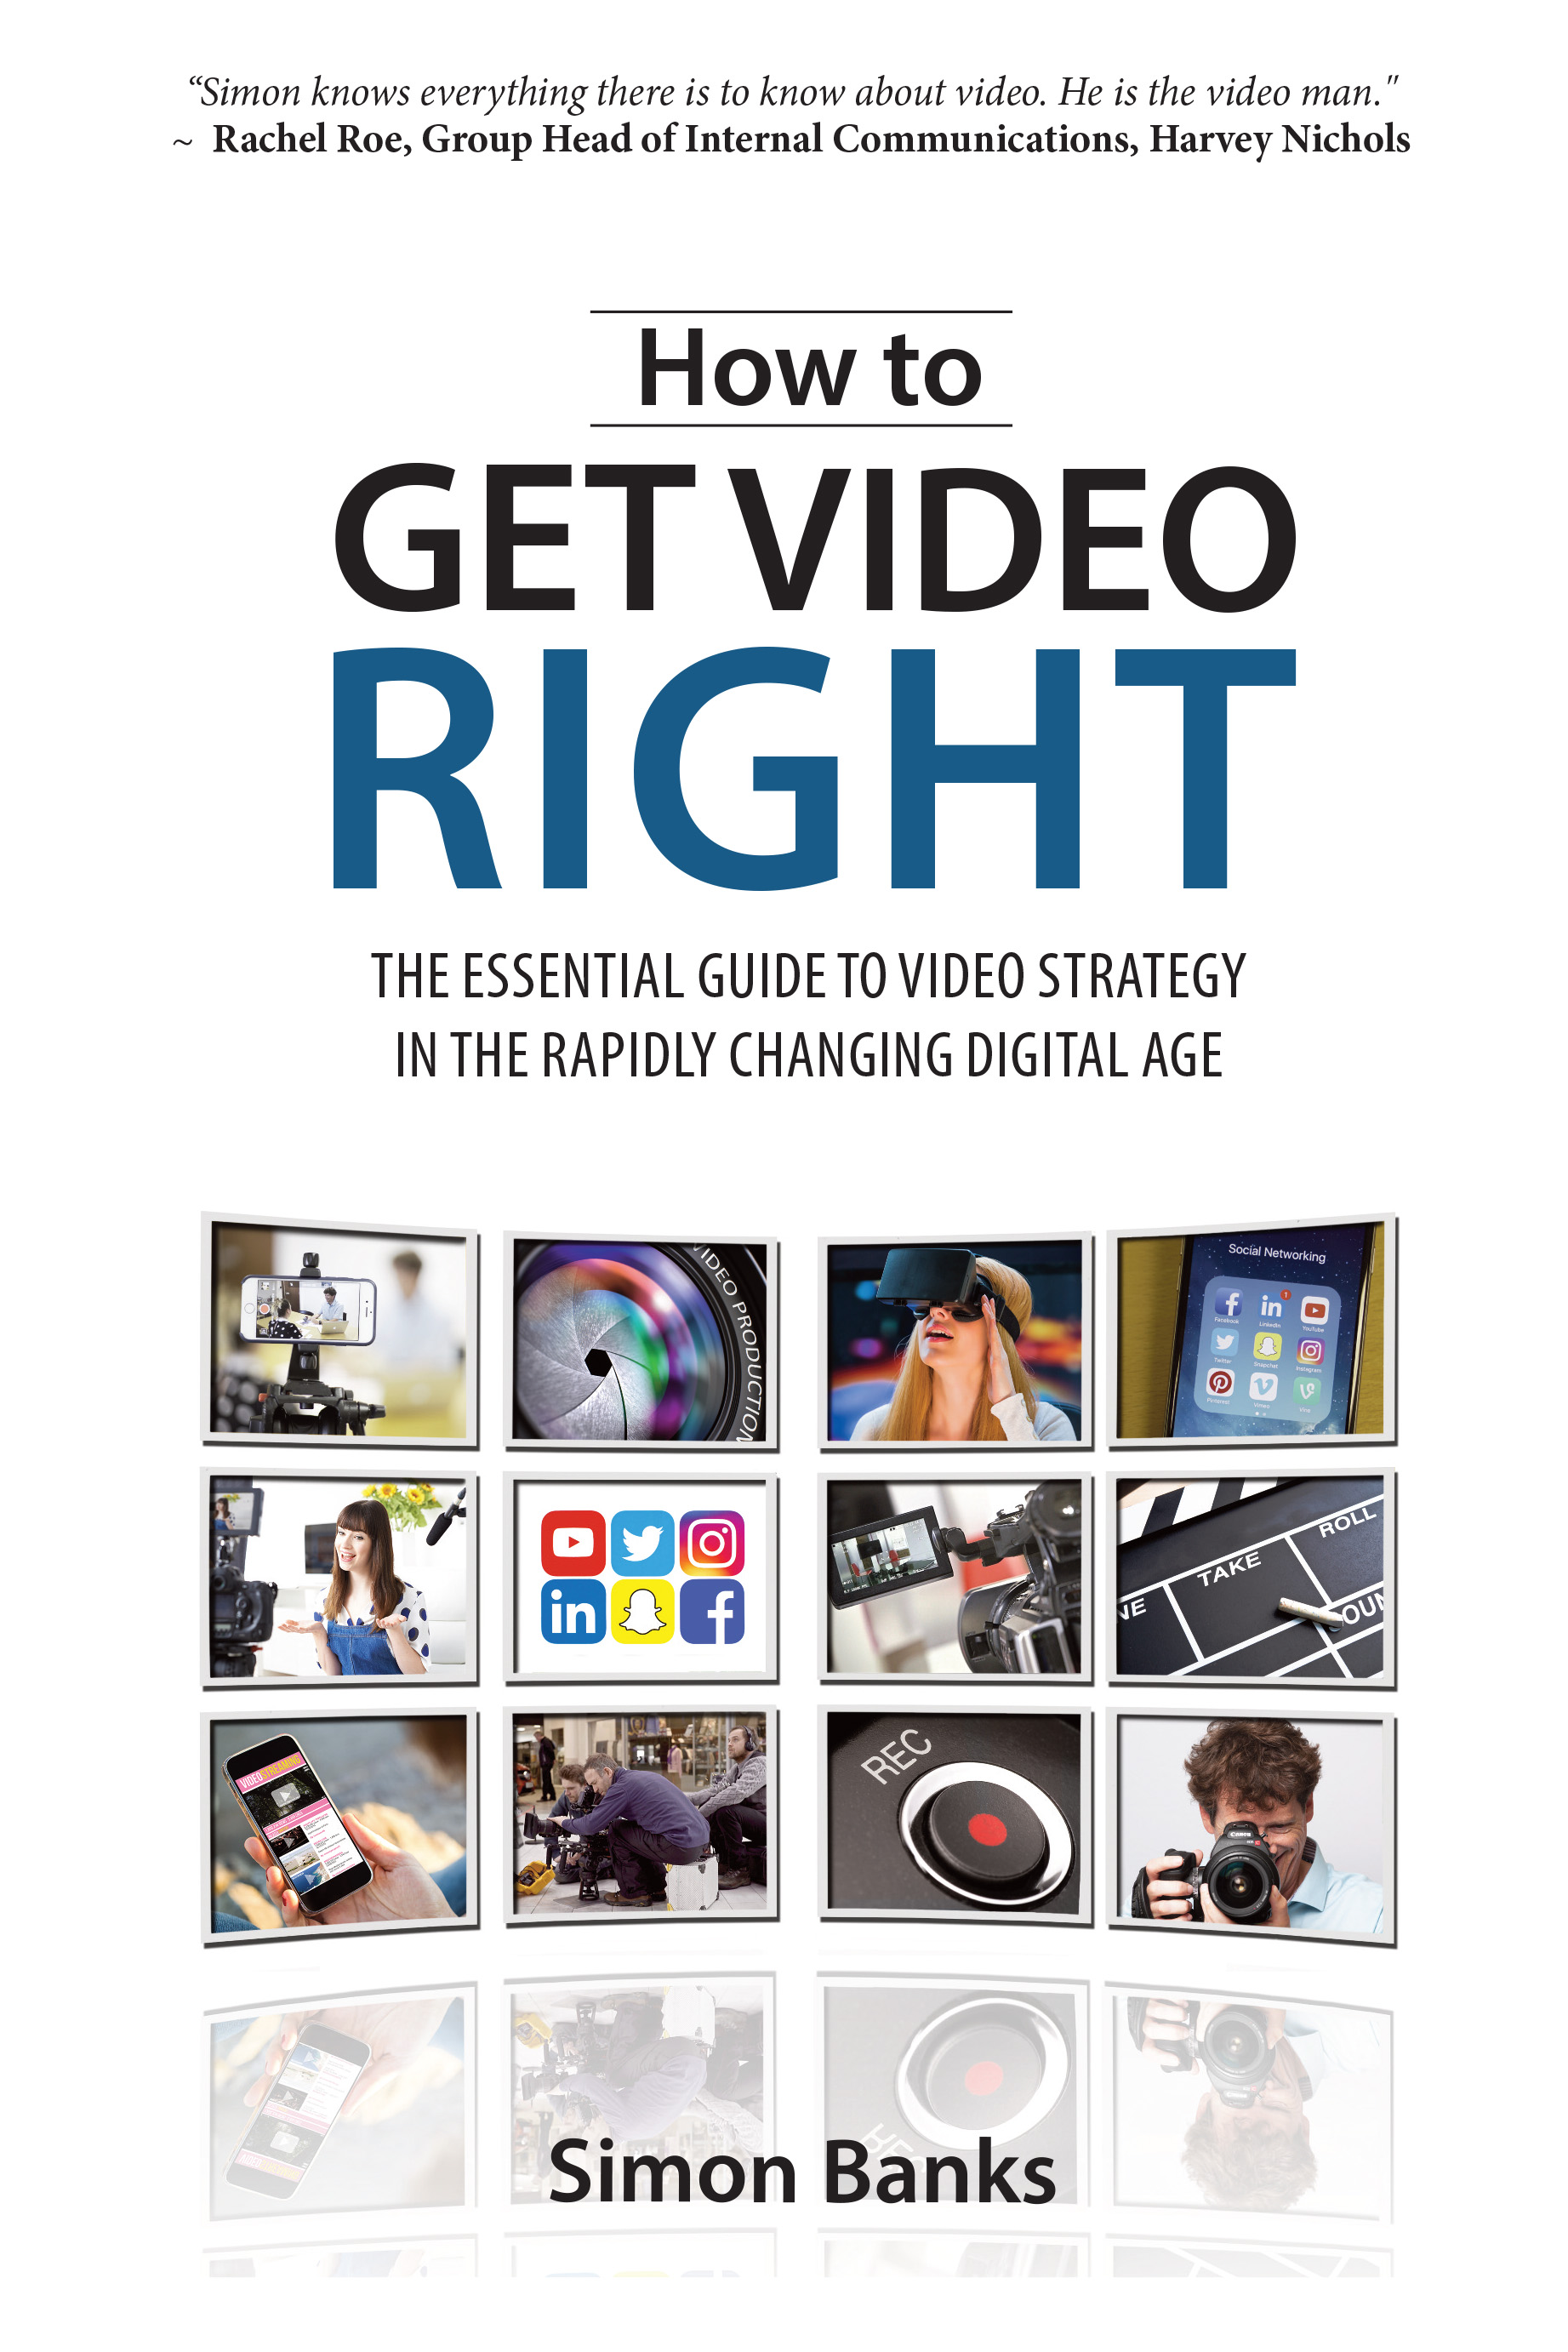 How to Get Video Right by Simon Banks